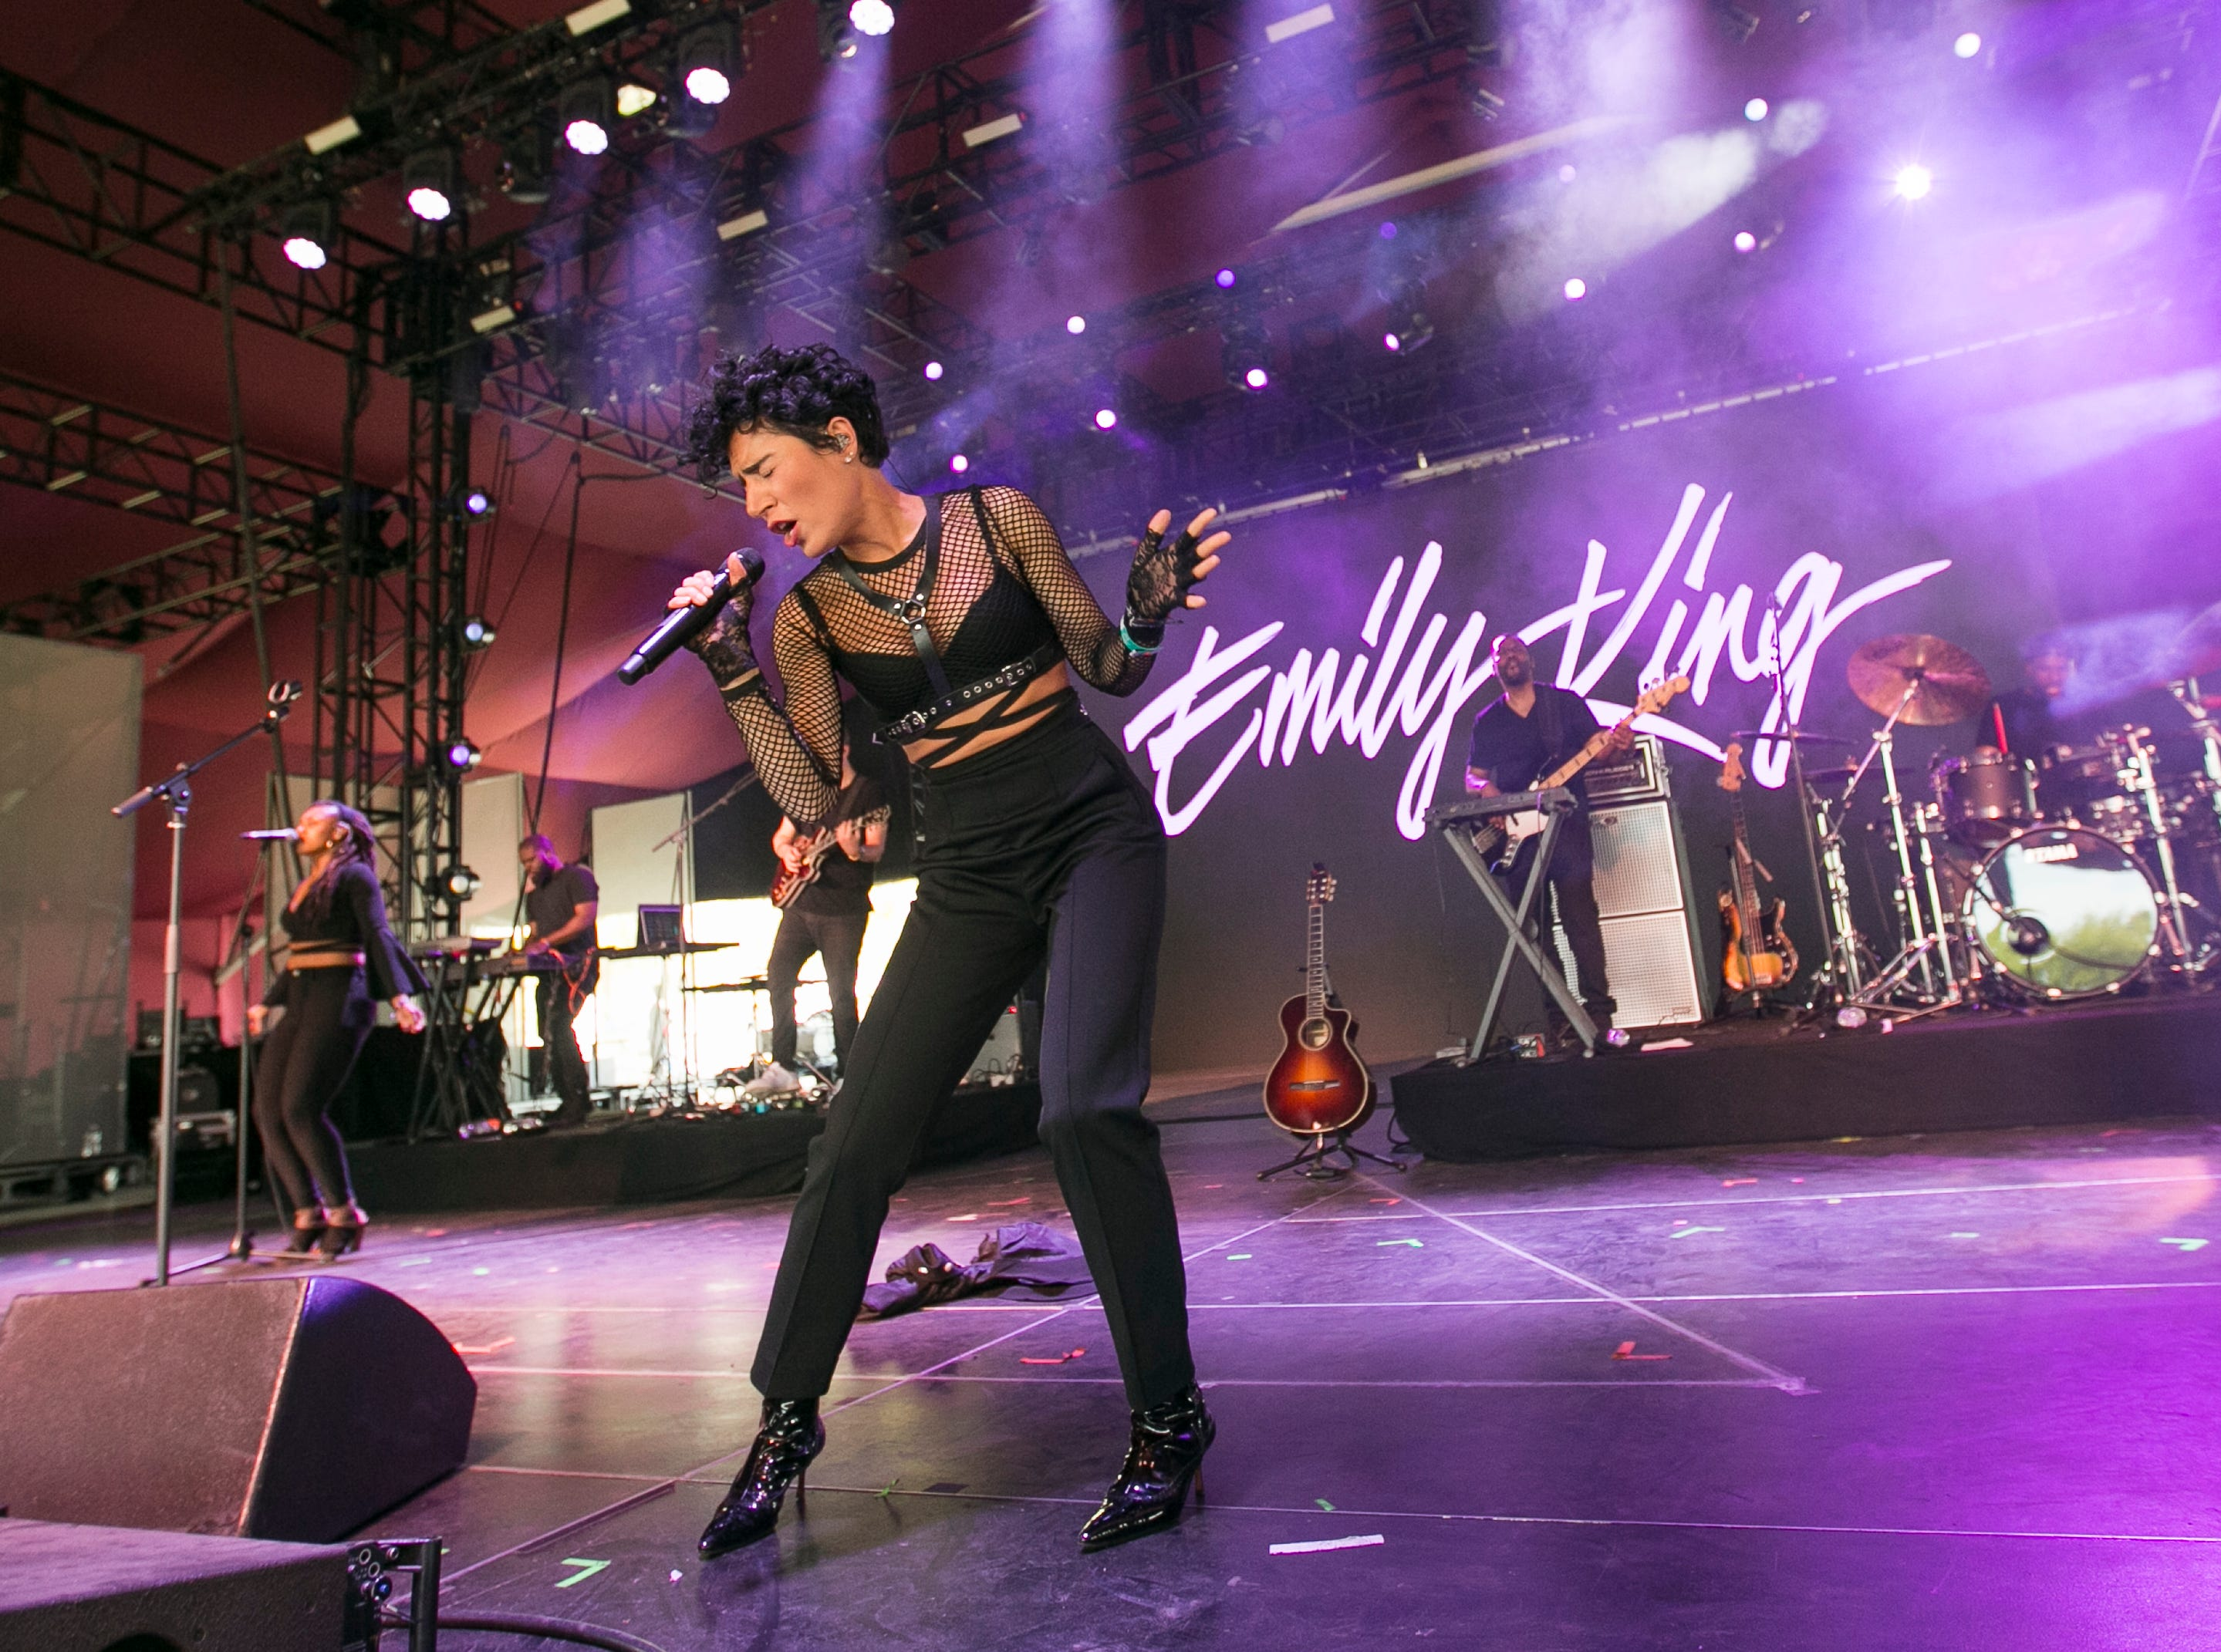 Emily King plays the Gobi stage at the Coachella Valley Music and Arts Festival in Indio, Calif., on Sunday, April 14, 2019.